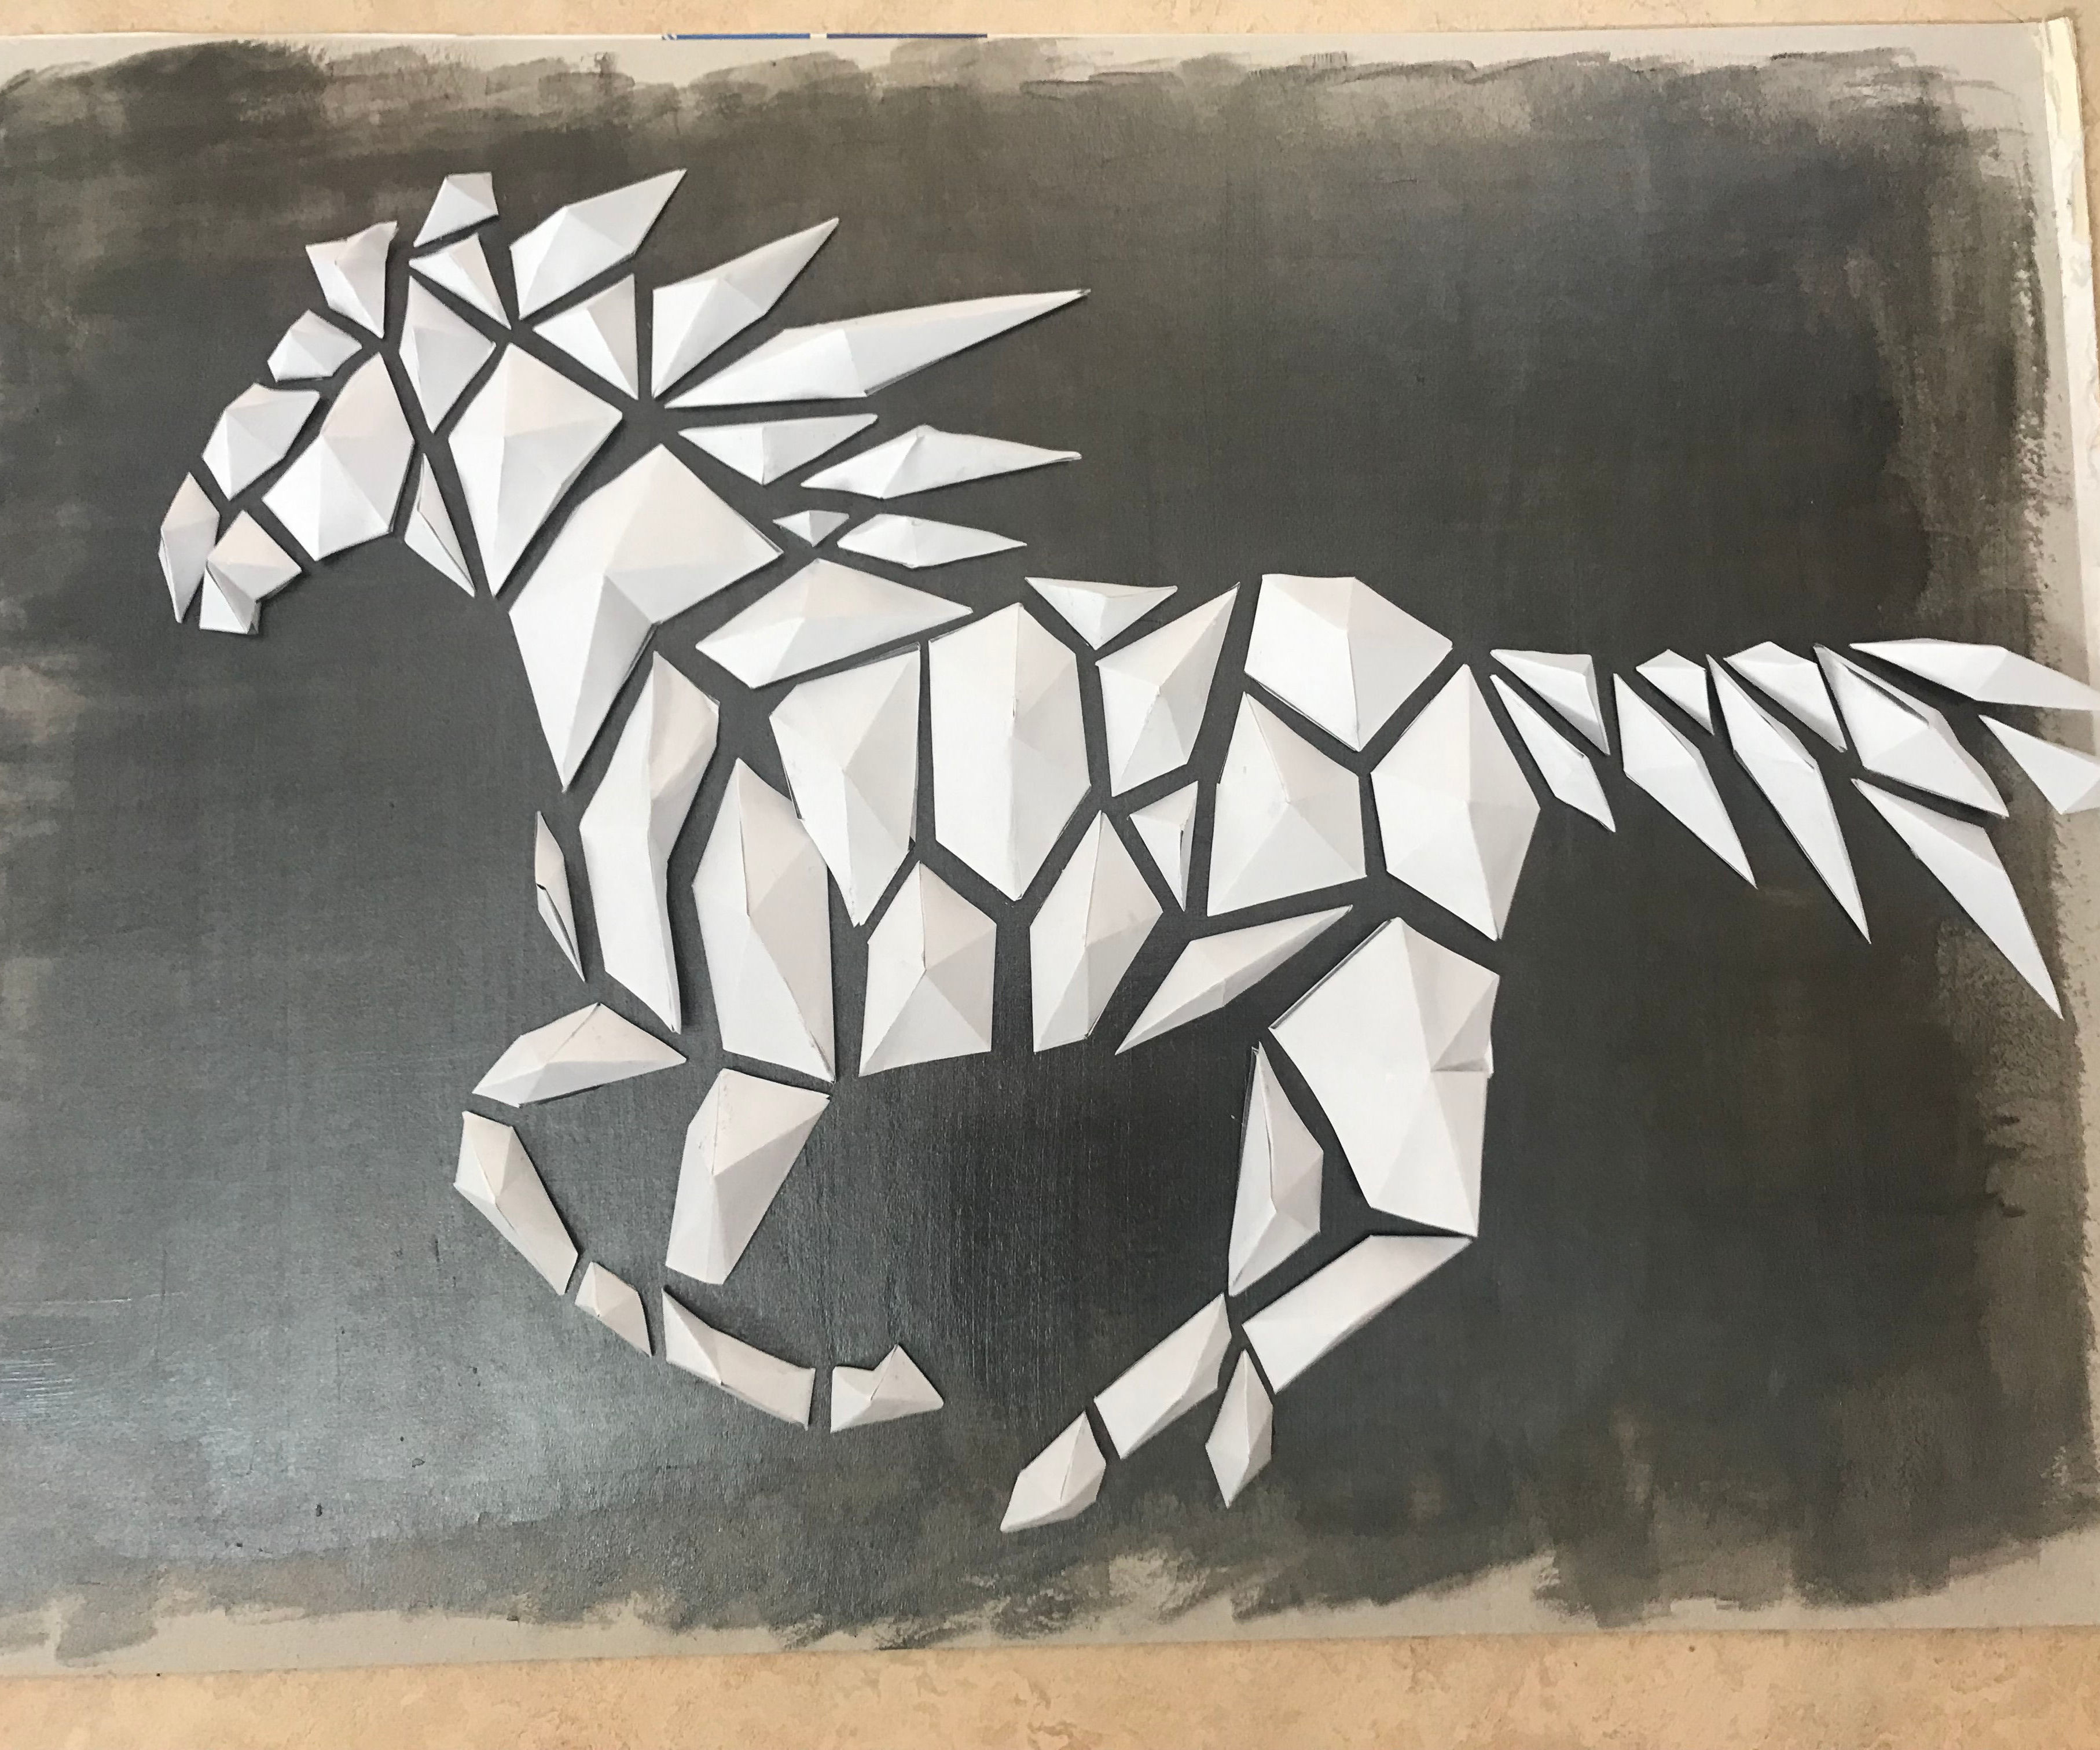 How to Make a 3D Low-poly Paper Horse